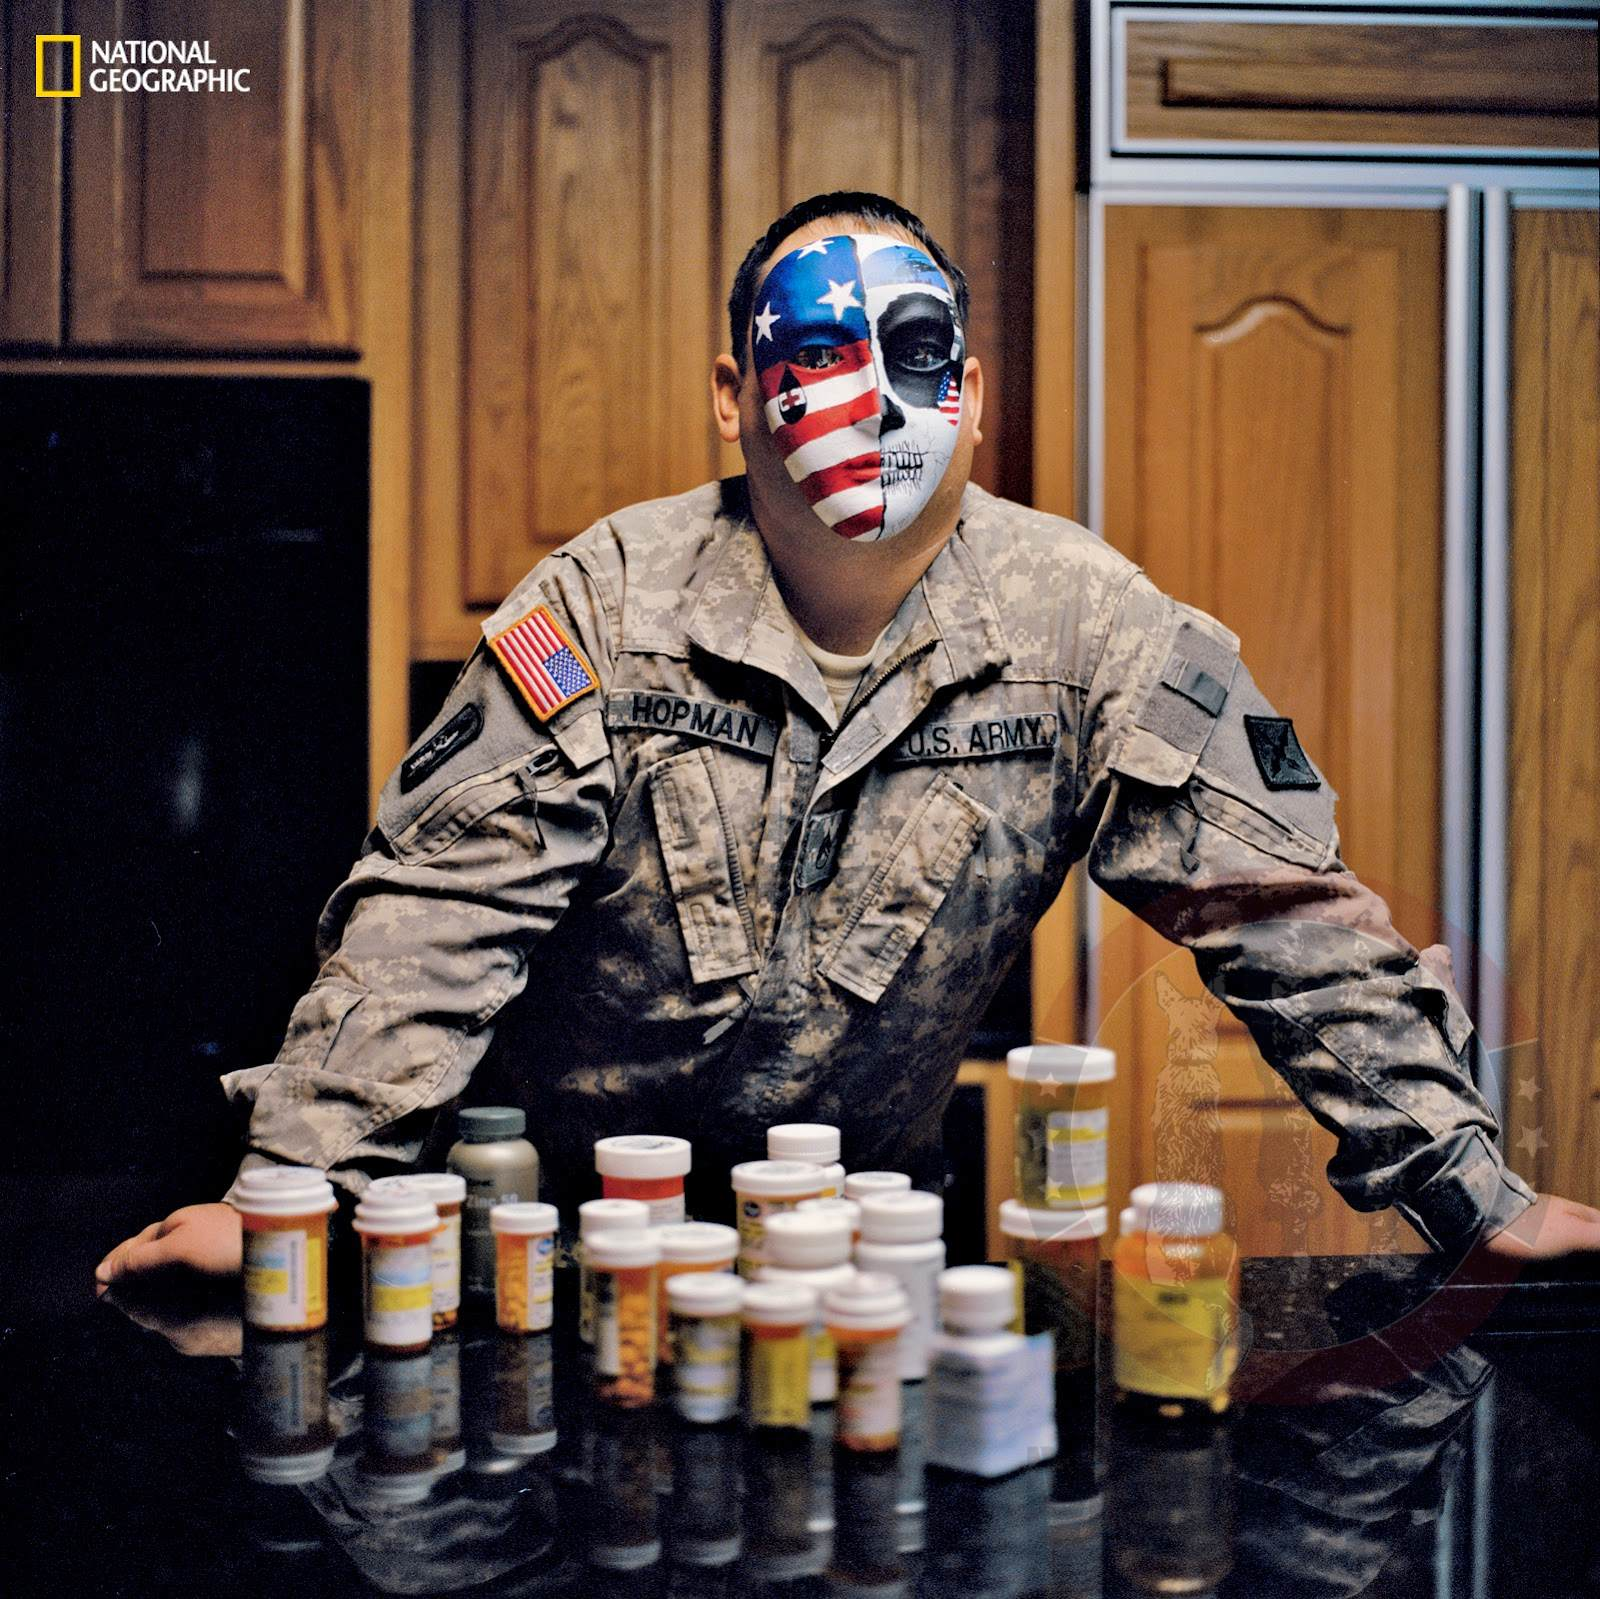 Army Staff Sgt. Perry Hopman wearing his half patriotic, half death head mask.